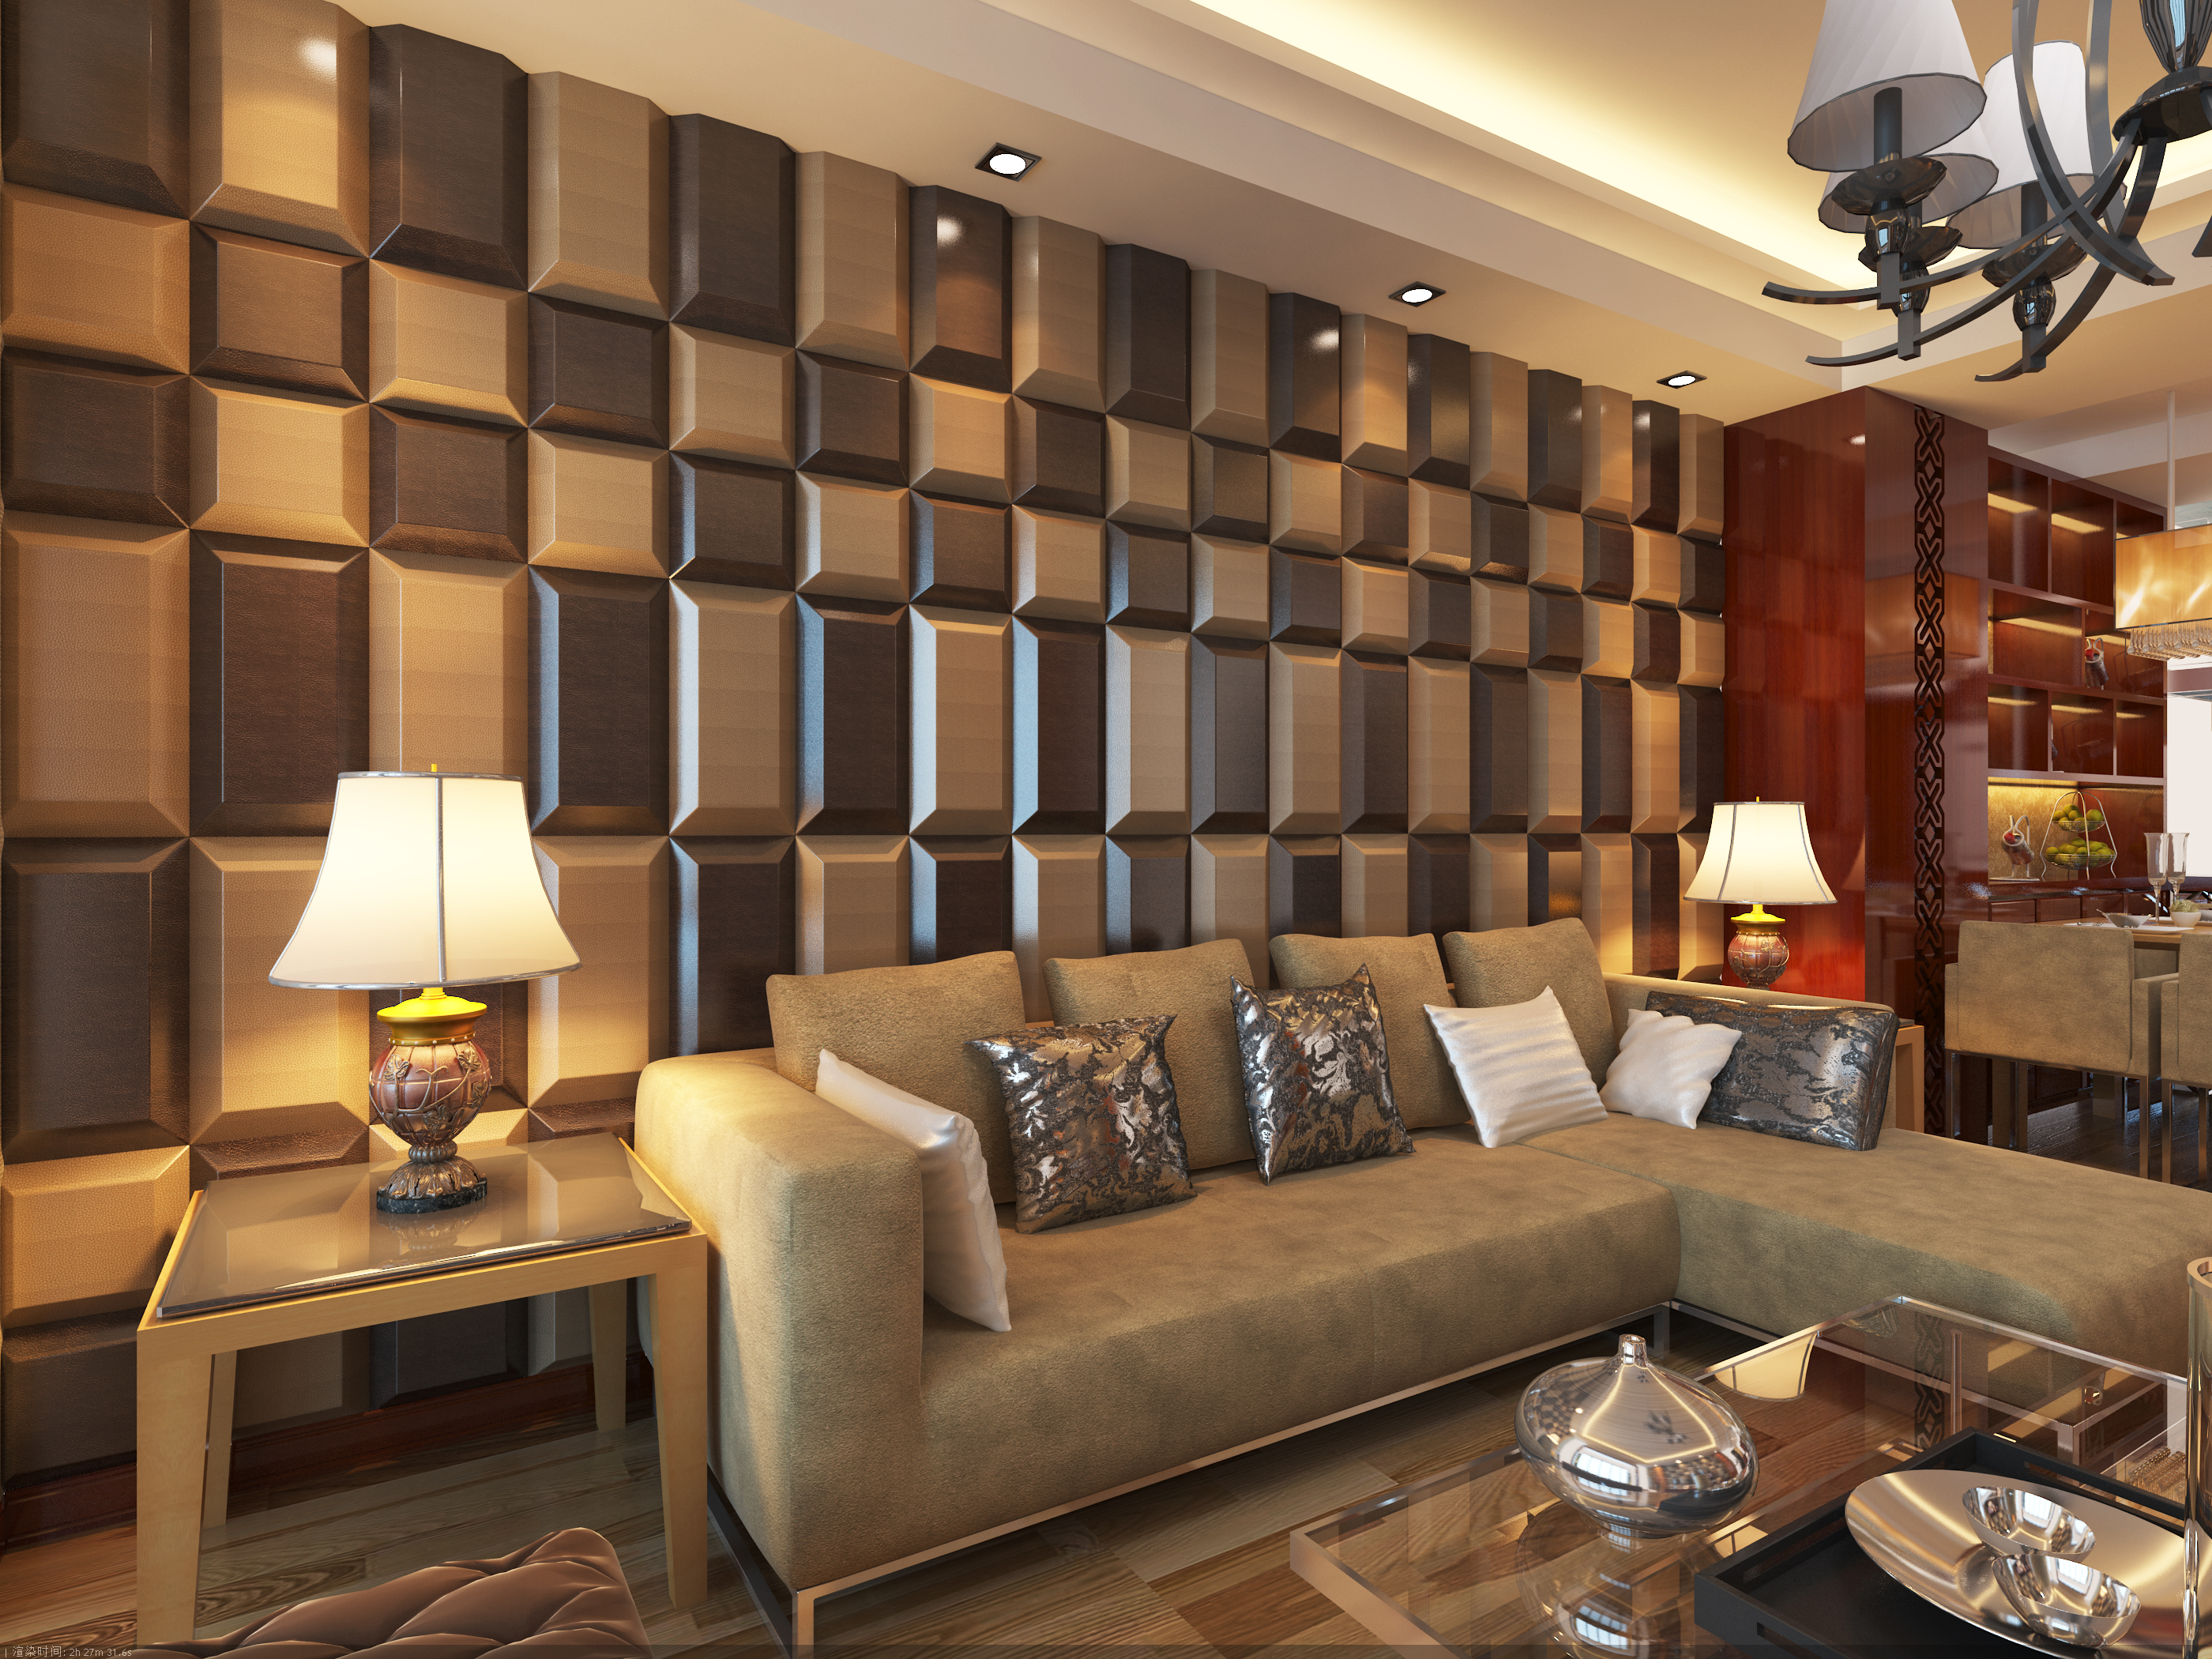 3D Leather Tiles In Living Room Wall Design